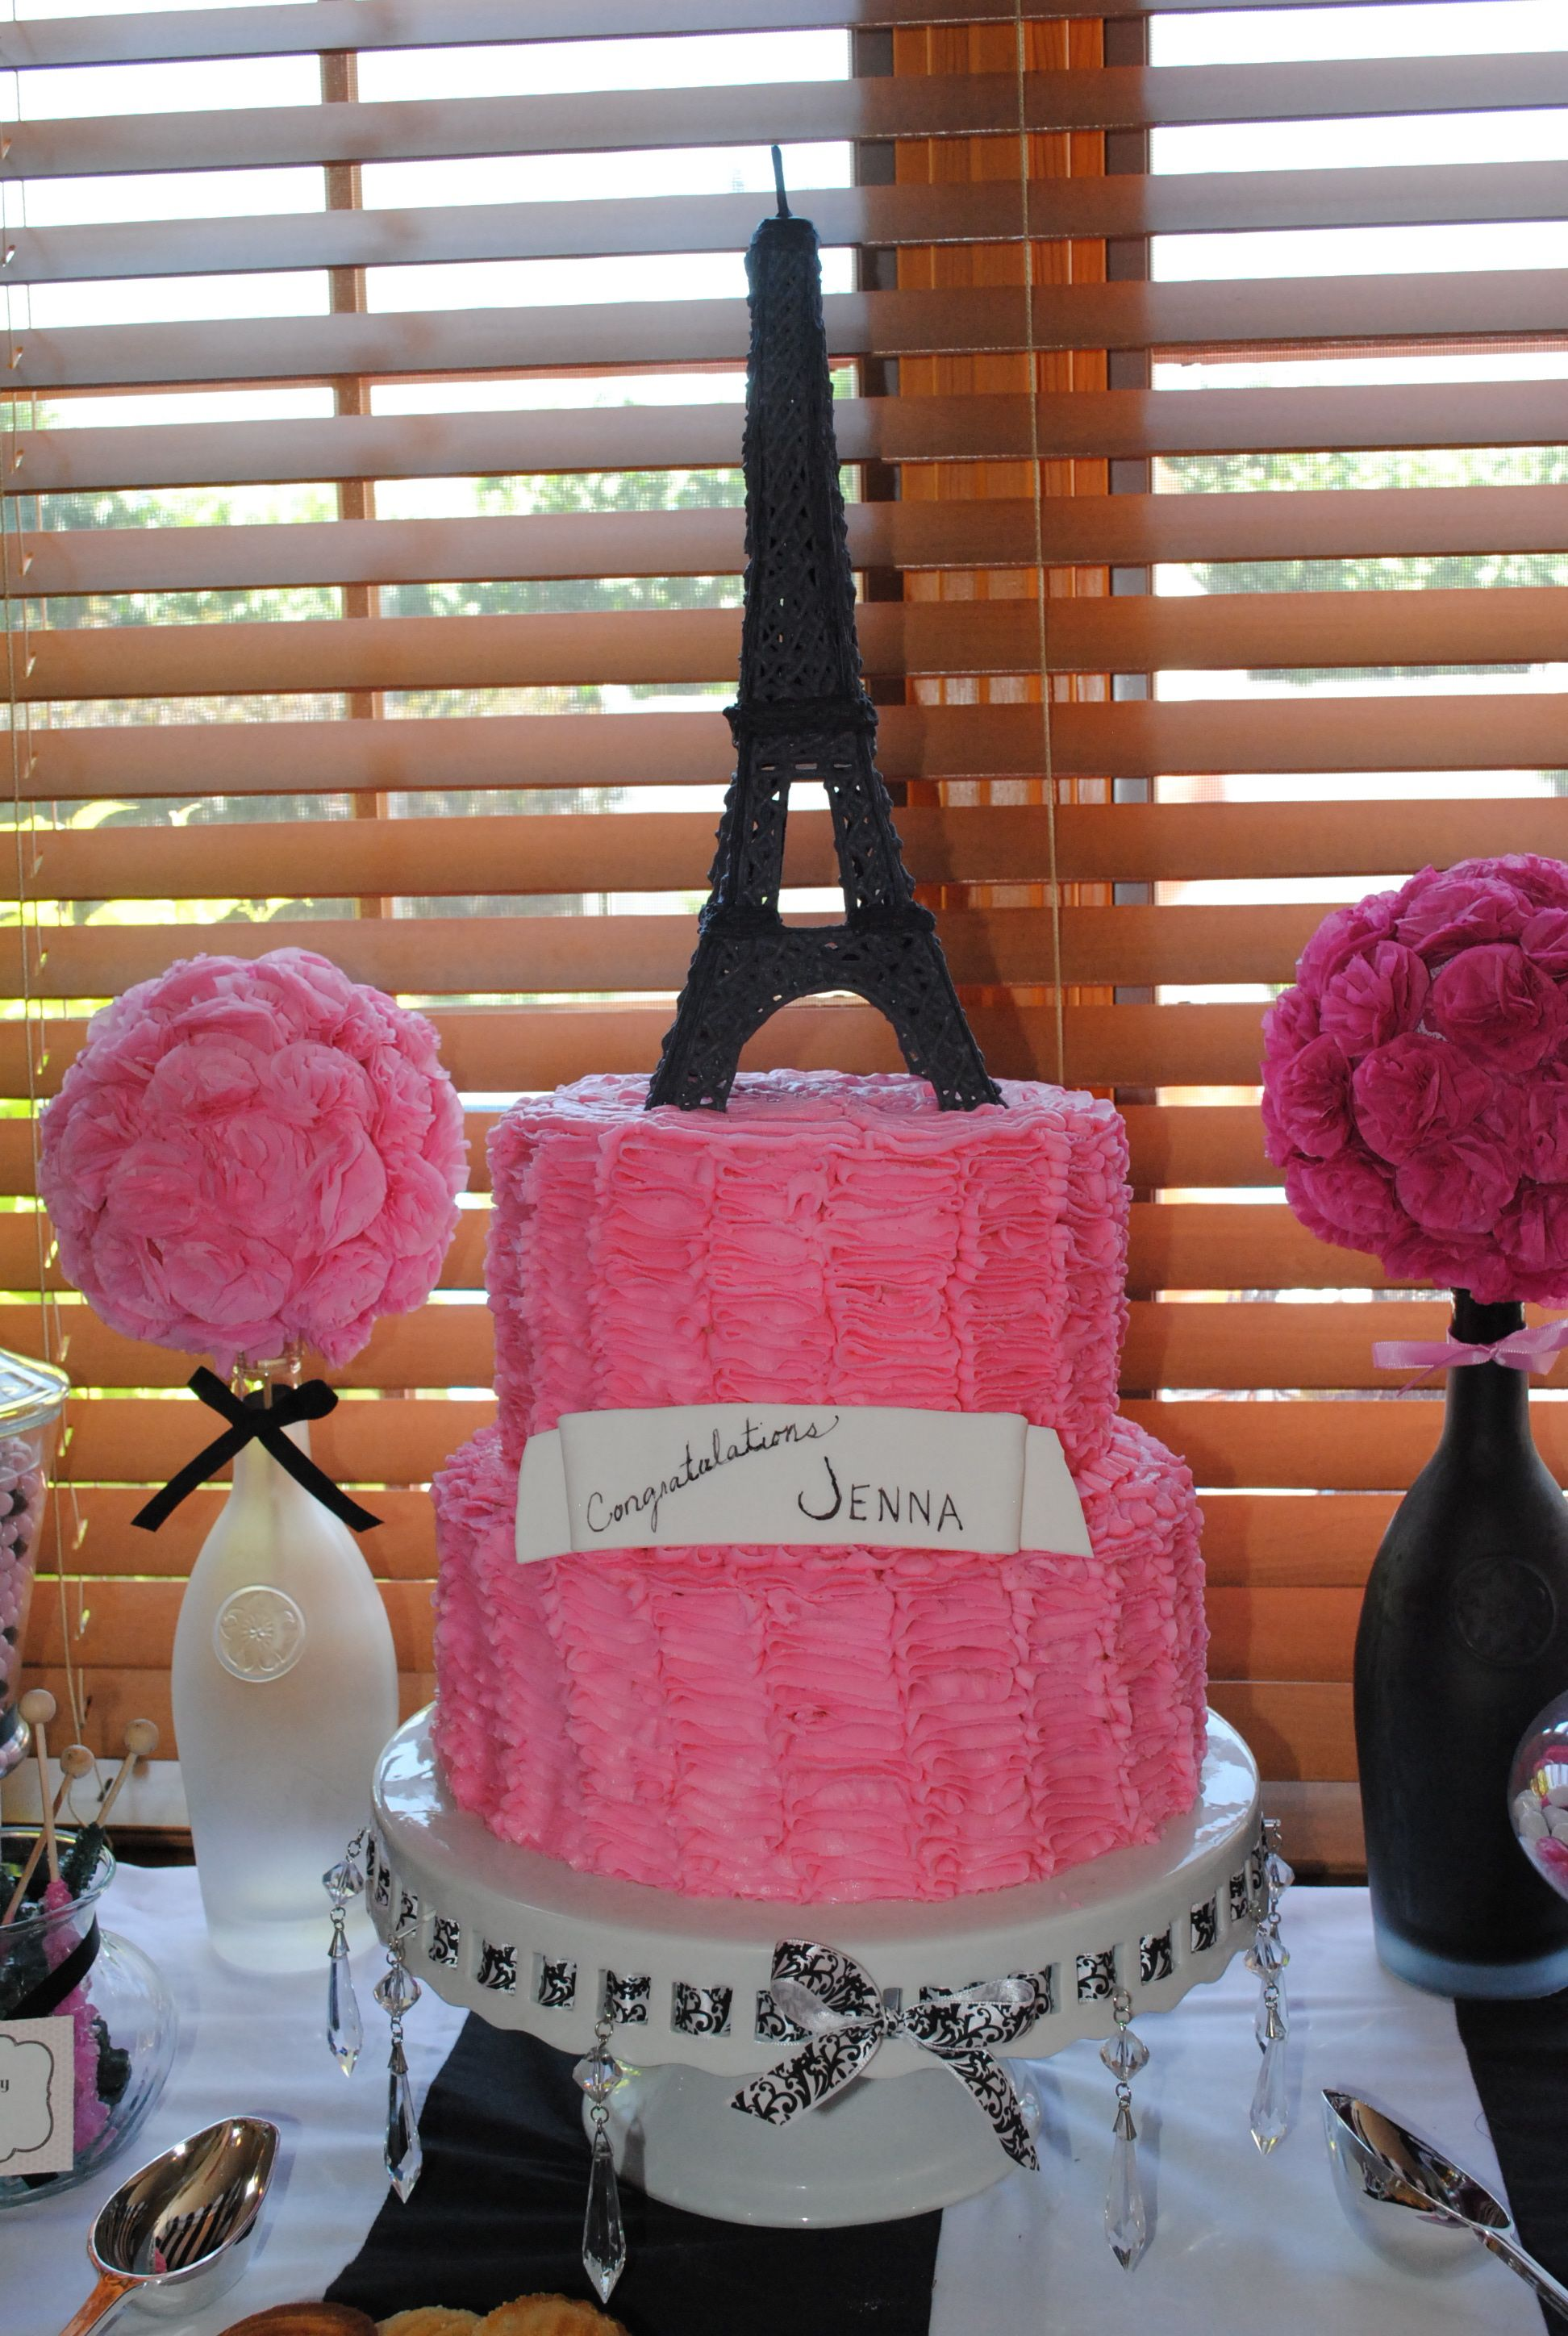 eiffel tower cake | 17th Birthday cakes | Pinterest